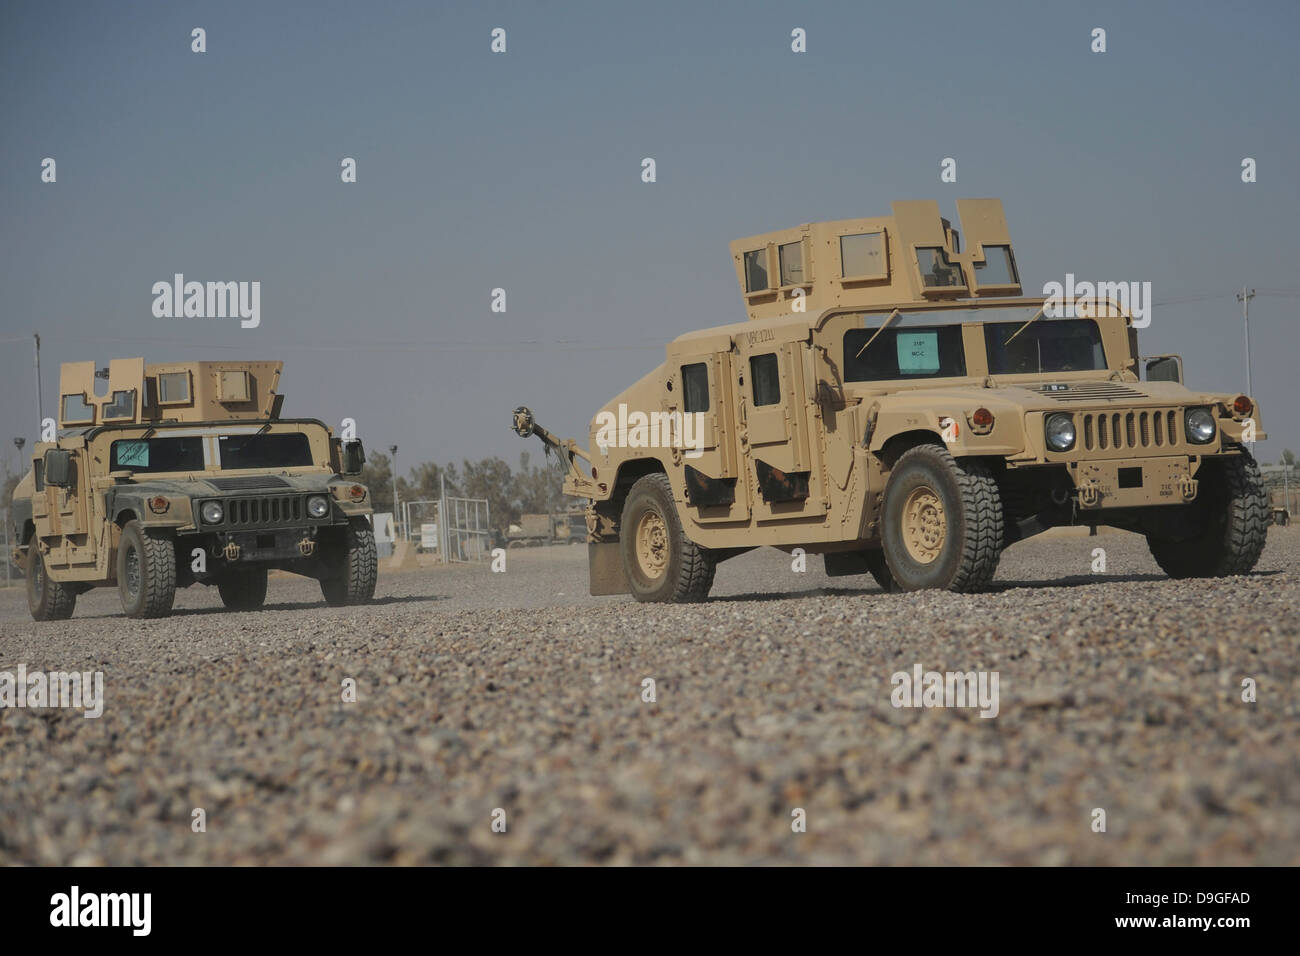 Two M1114 Humvee vehicles at Camp Taji, Iraq. - Stock Image